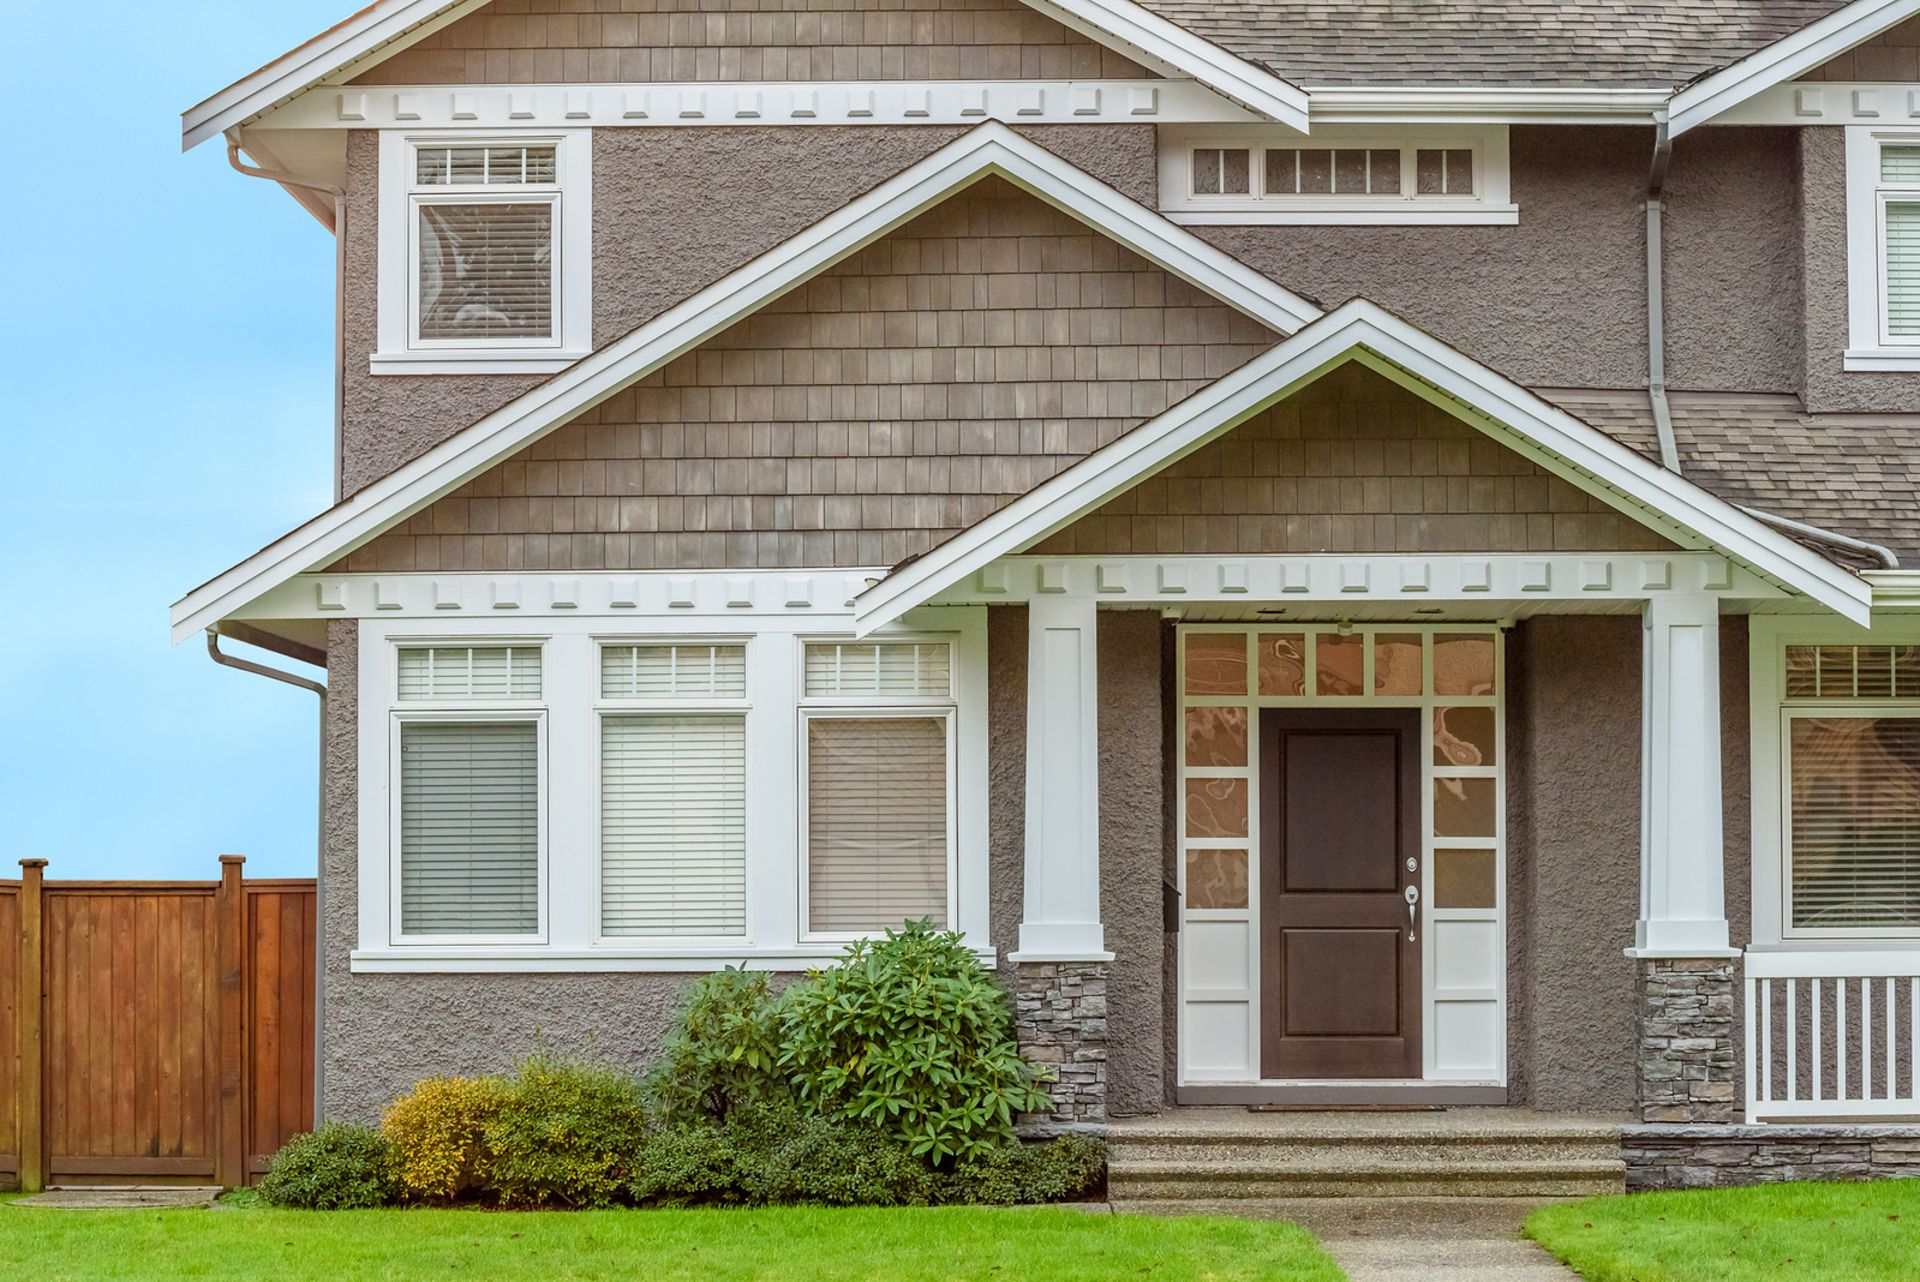 4 Things You Should Look for in an Investment Property